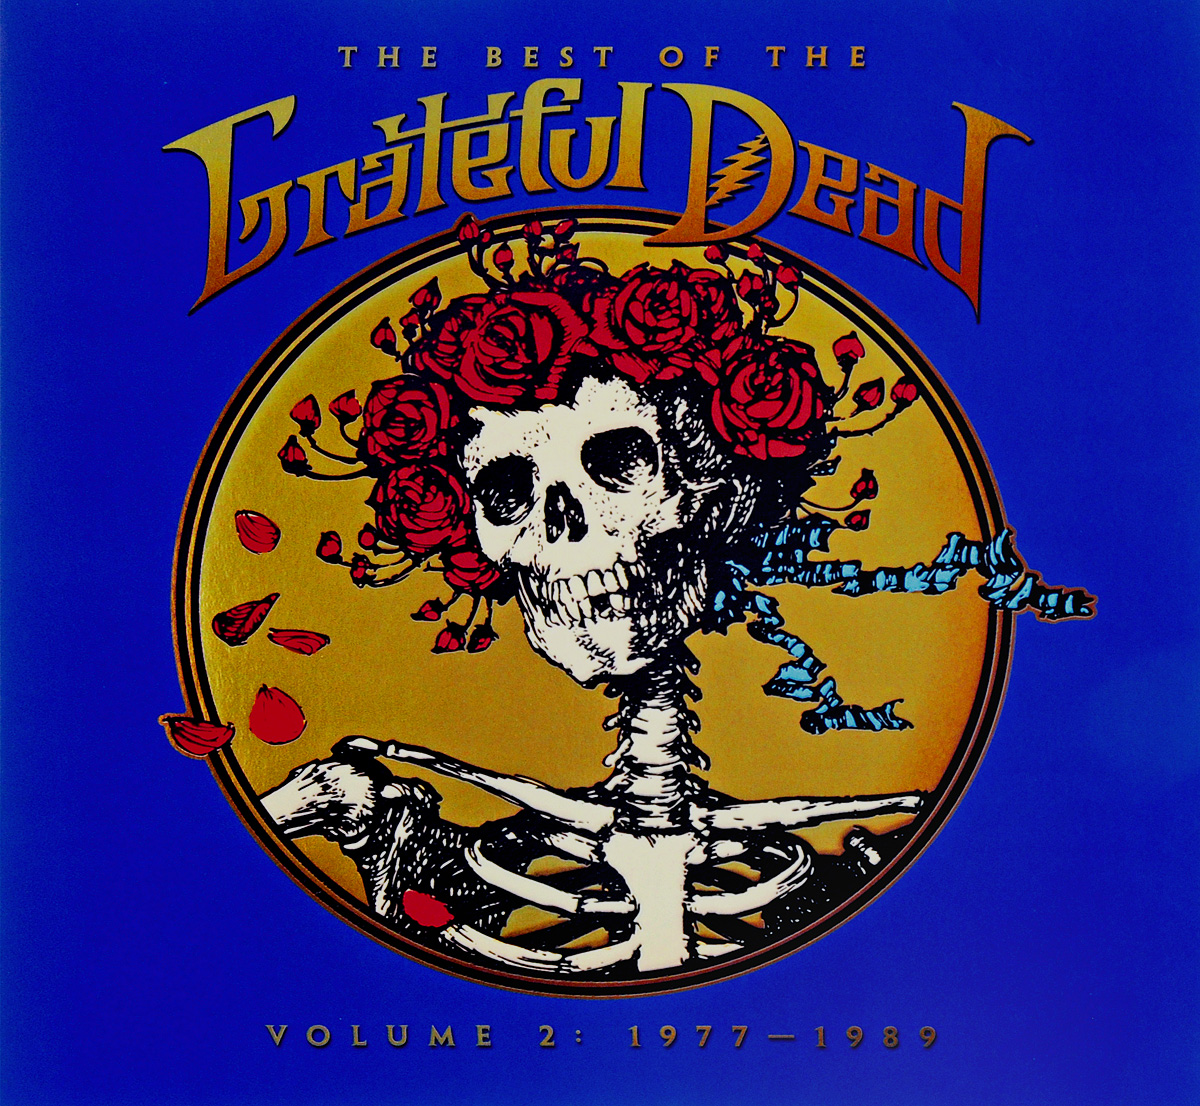 The Grateful Dead. The Best Of The Grateful Dead Volume 2: 1977 - 1989 (LP) the grateful dead grateful dead the best of the grateful dead 2 lp